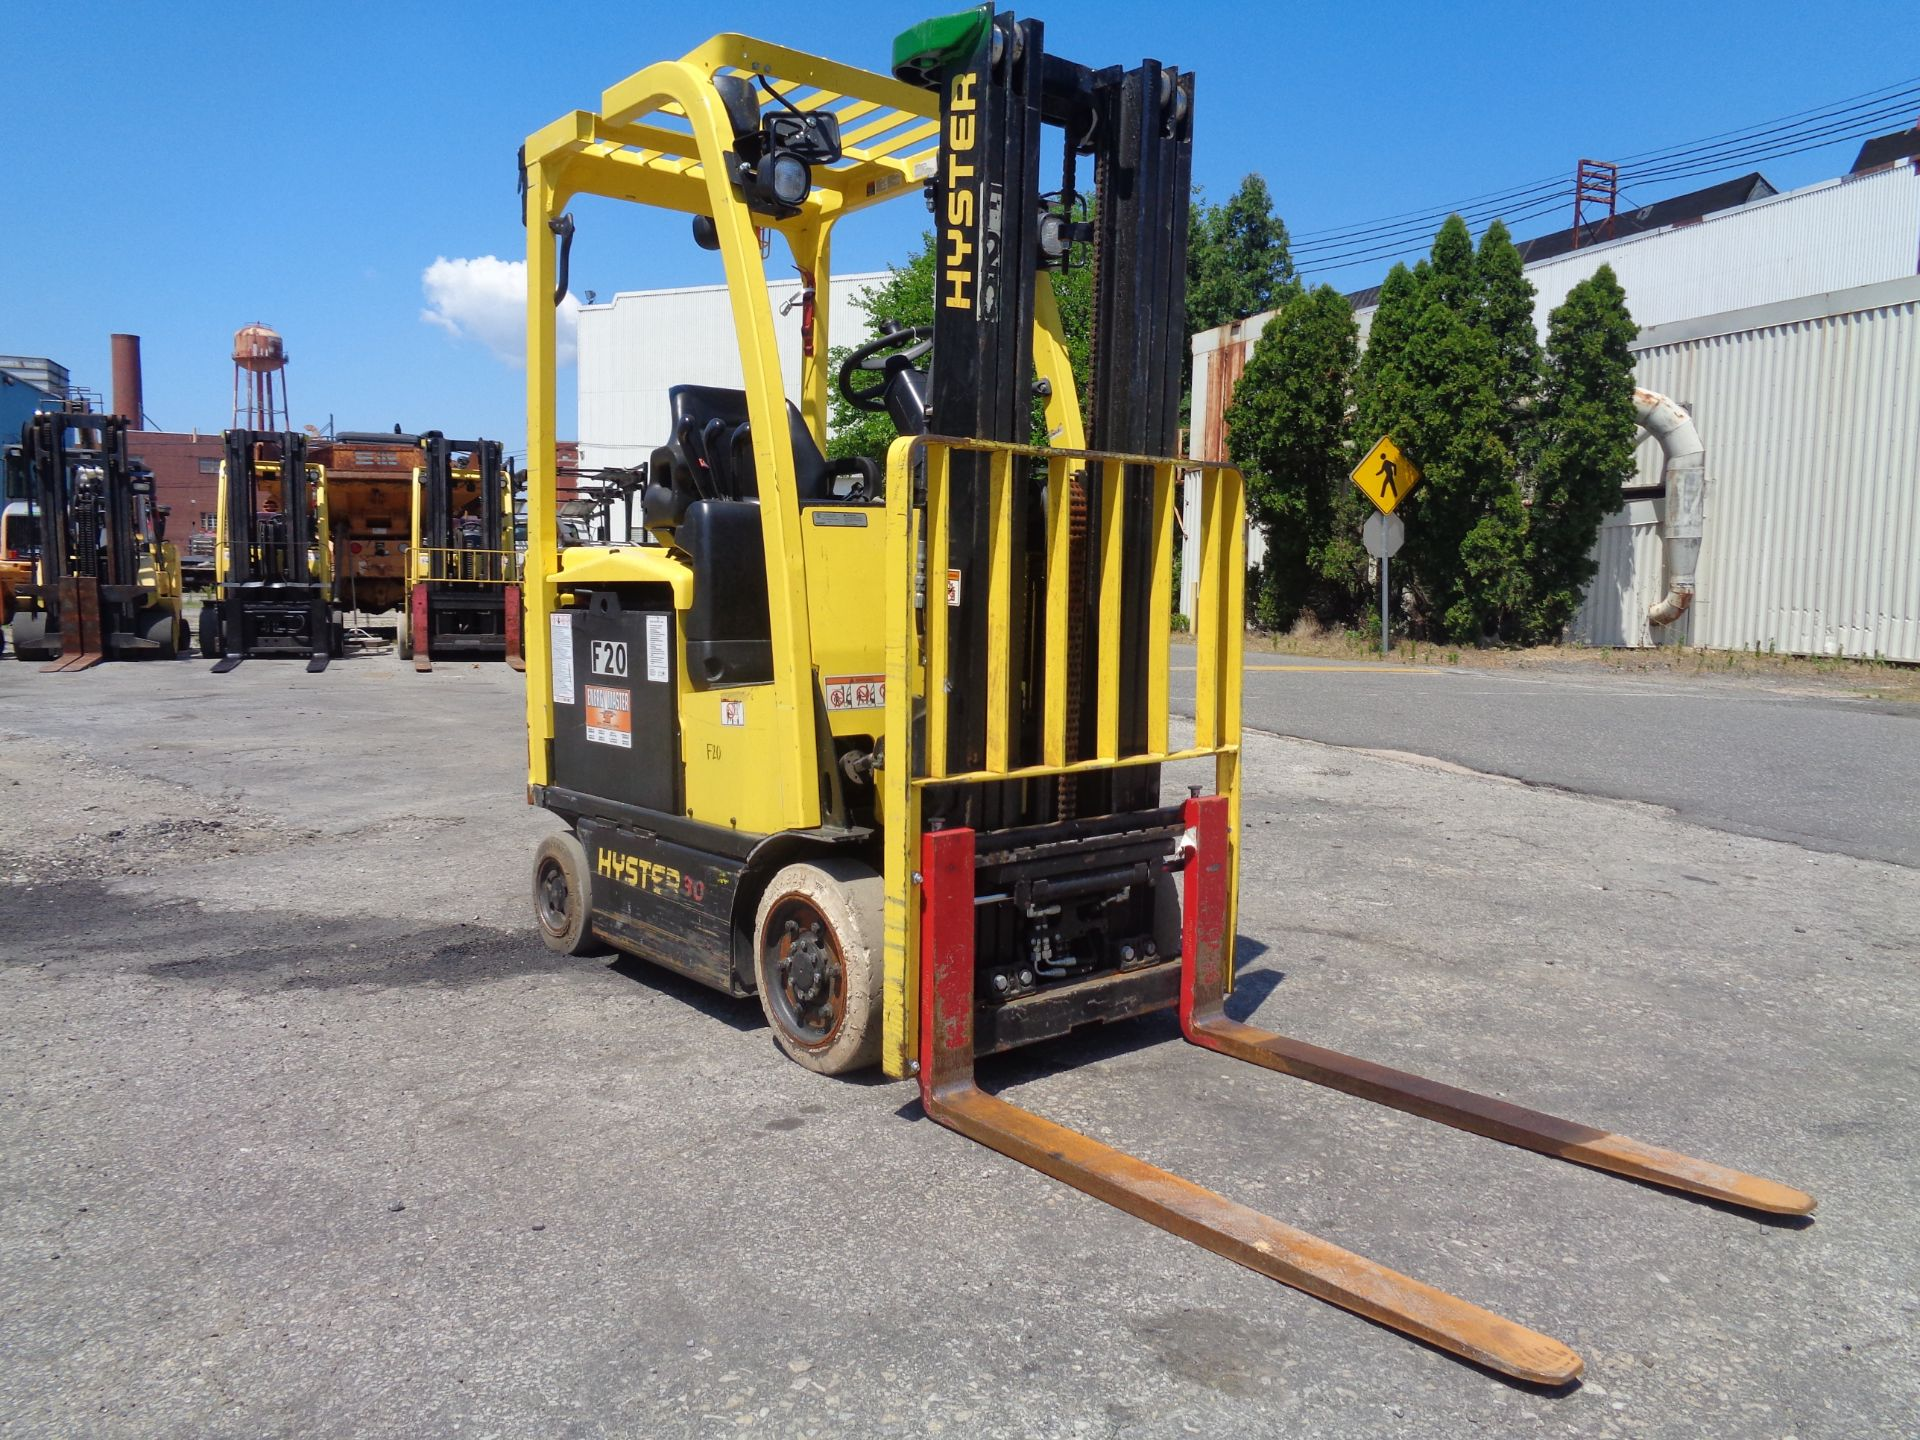 2016 Hyster E30XN 3,000lb Forklift - Image 5 of 18